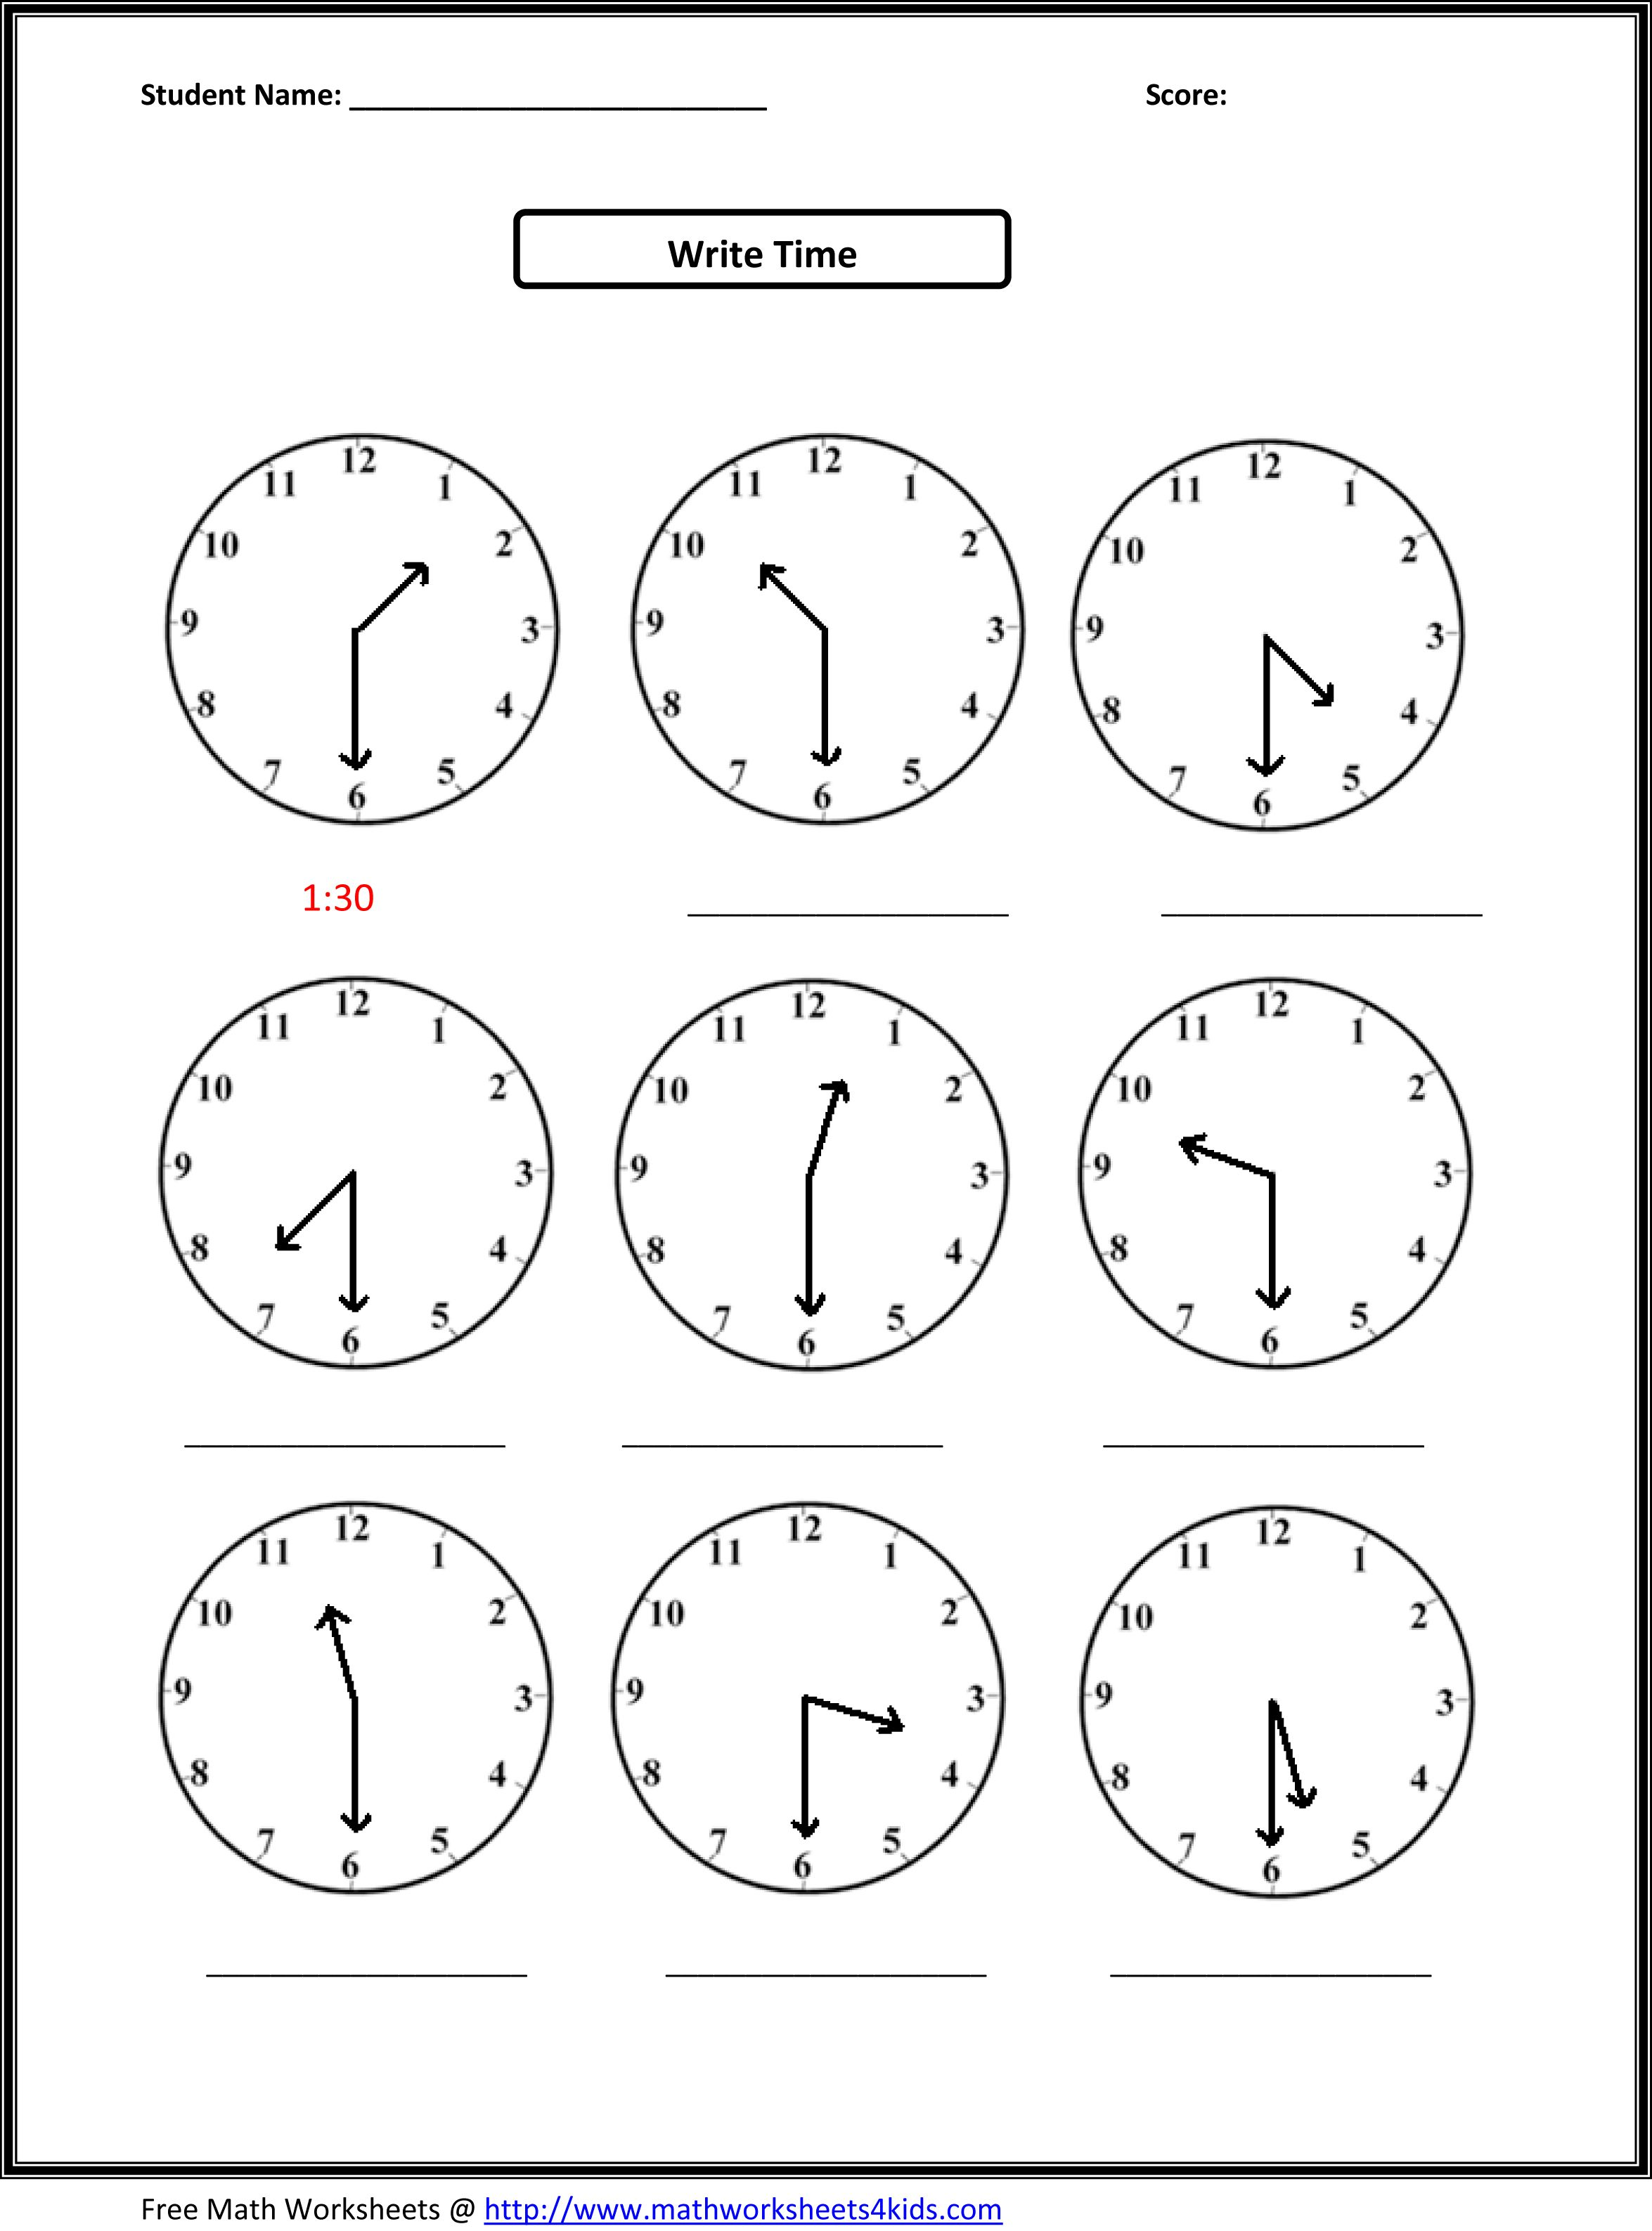 Weirdmailus  Mesmerizing Worksheet On Time For Grade   Reocurent With Marvelous Free Printable Telling Time Worksheets Nd Grade  Reocurent With Breathtaking Budget Printable Worksheet Also Th Grade Vocabulary Worksheets In Addition Time Worksheets Grade  And Measure In Inches Worksheet As Well As Phonics Worksheets Grade  Additionally Au Worksheets From Reocurentcom With Weirdmailus  Marvelous Worksheet On Time For Grade   Reocurent With Breathtaking Free Printable Telling Time Worksheets Nd Grade  Reocurent And Mesmerizing Budget Printable Worksheet Also Th Grade Vocabulary Worksheets In Addition Time Worksheets Grade  From Reocurentcom